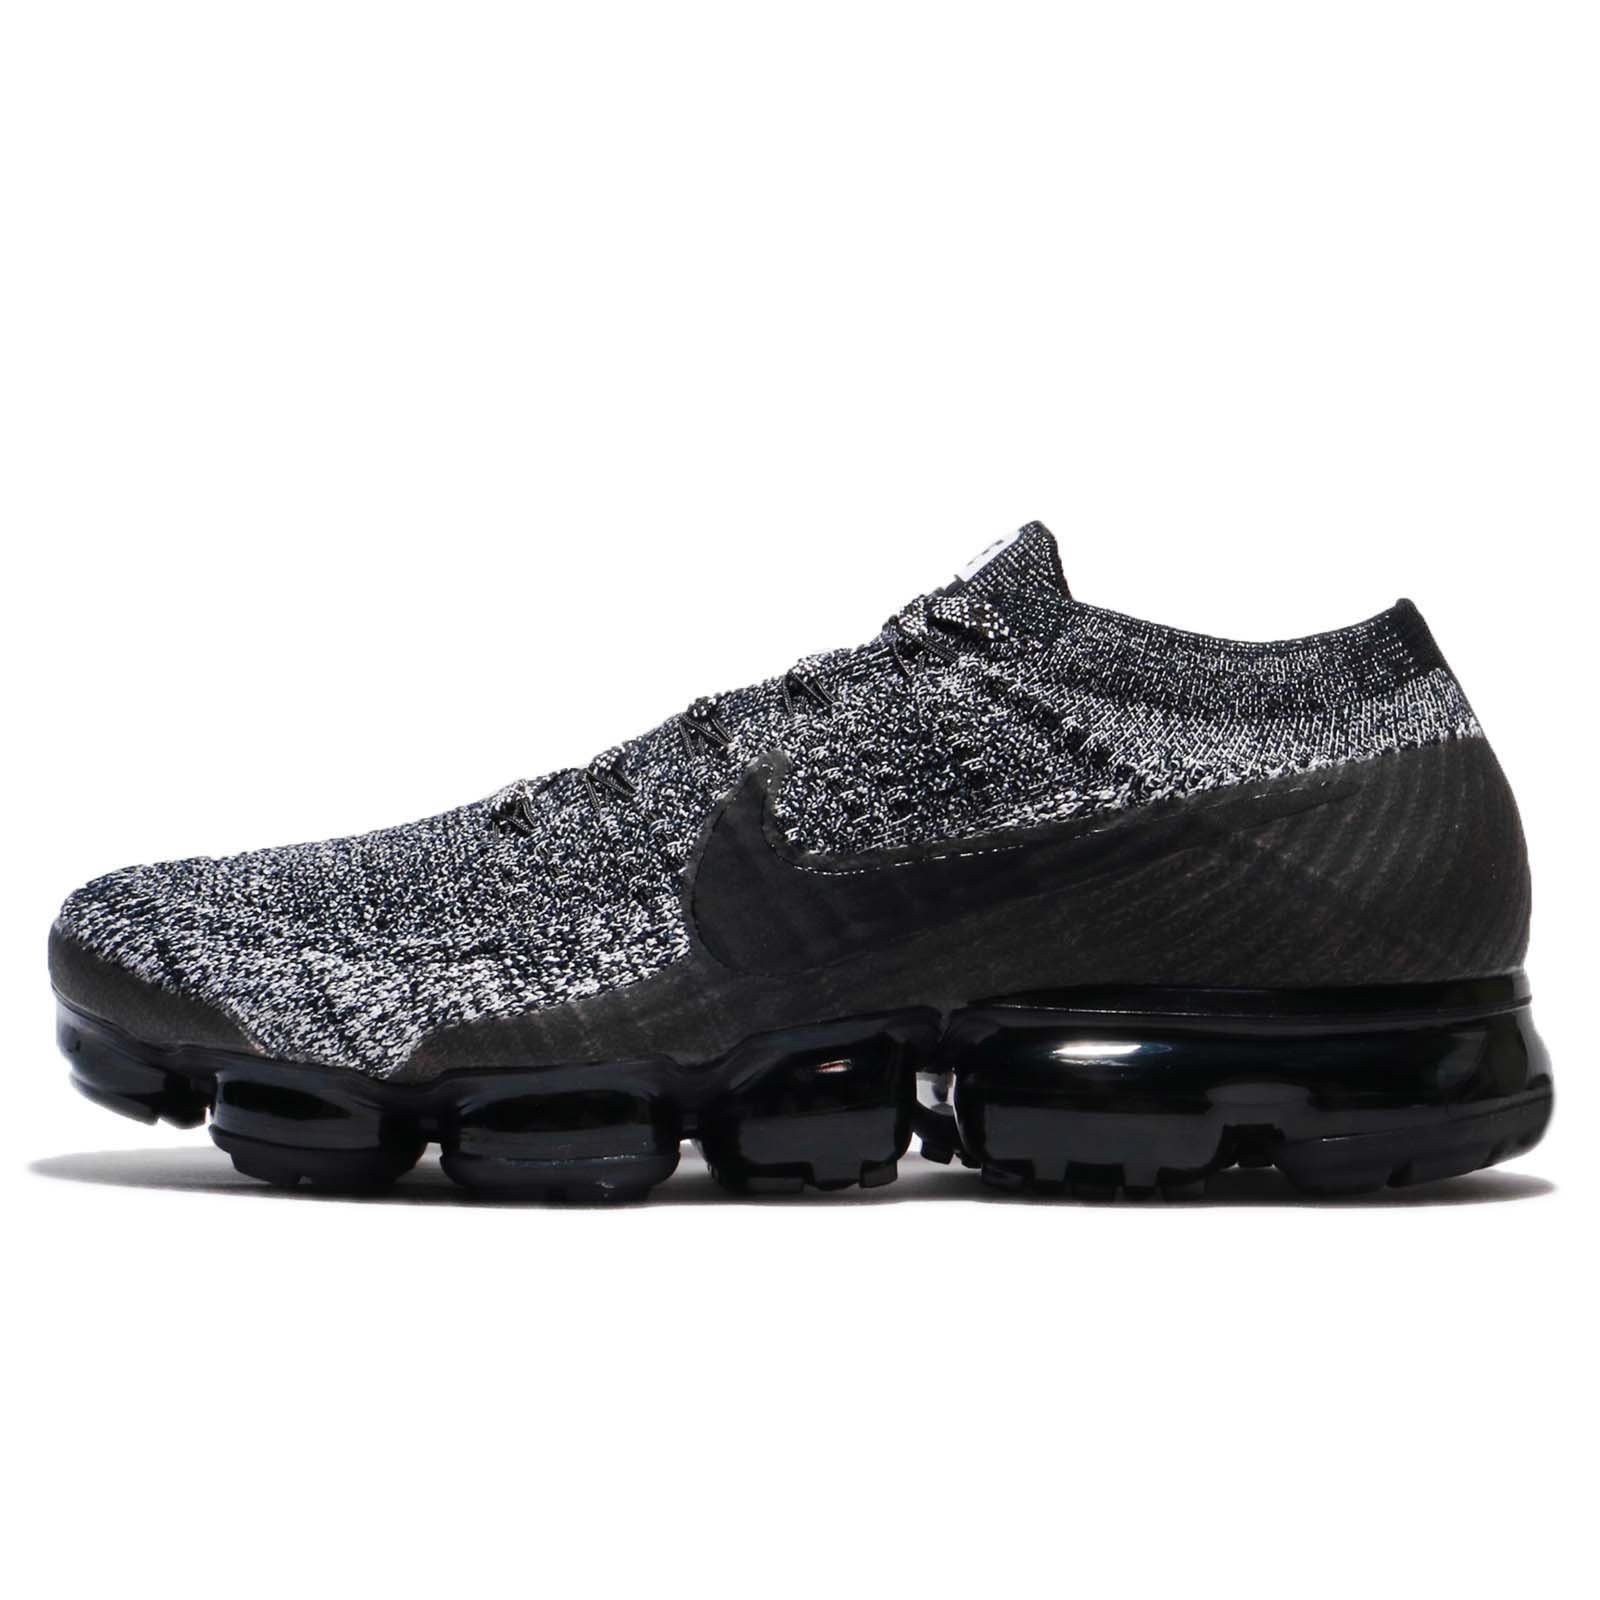 Nike Men's Air Vapormax Flyknit Running Shoes (12, Black/Black/White-